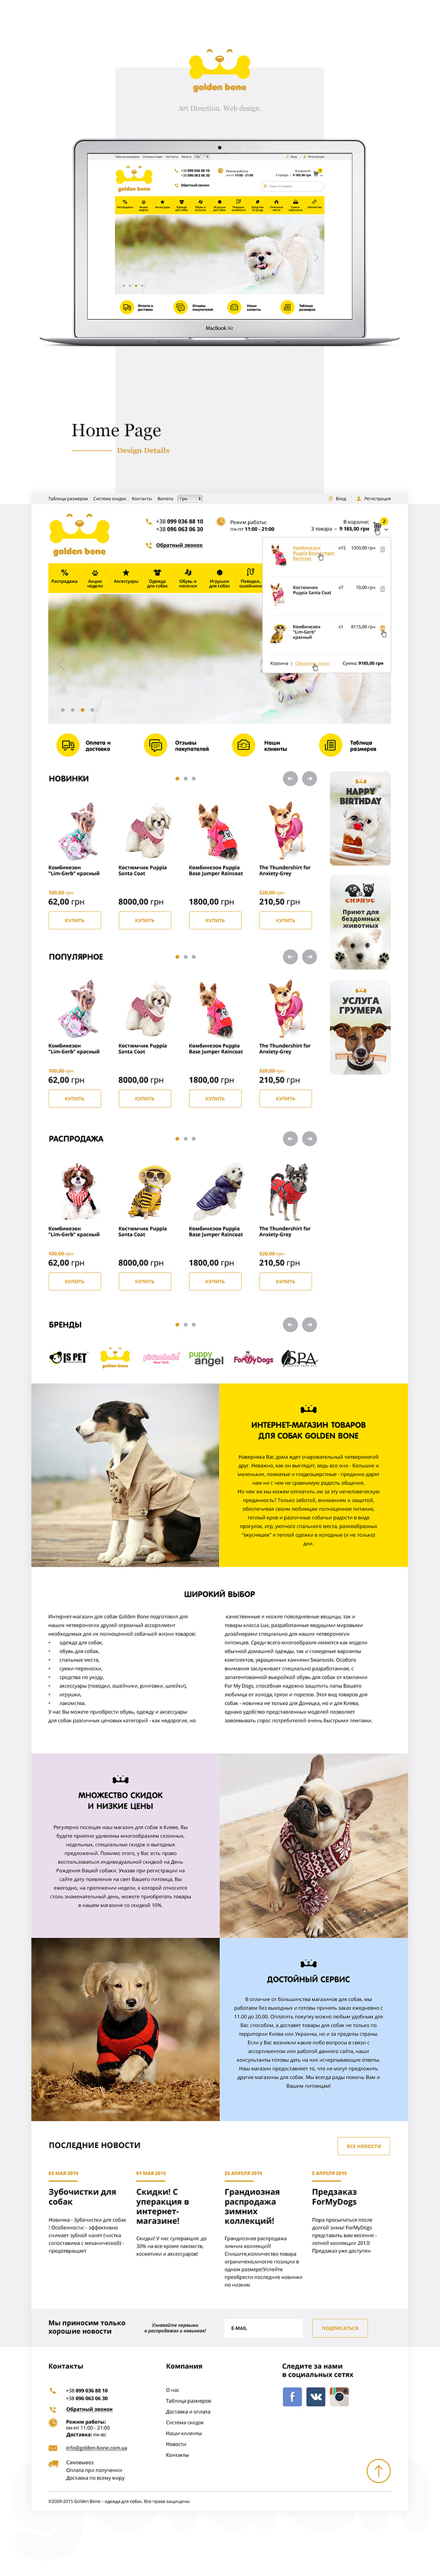 online store for dogs